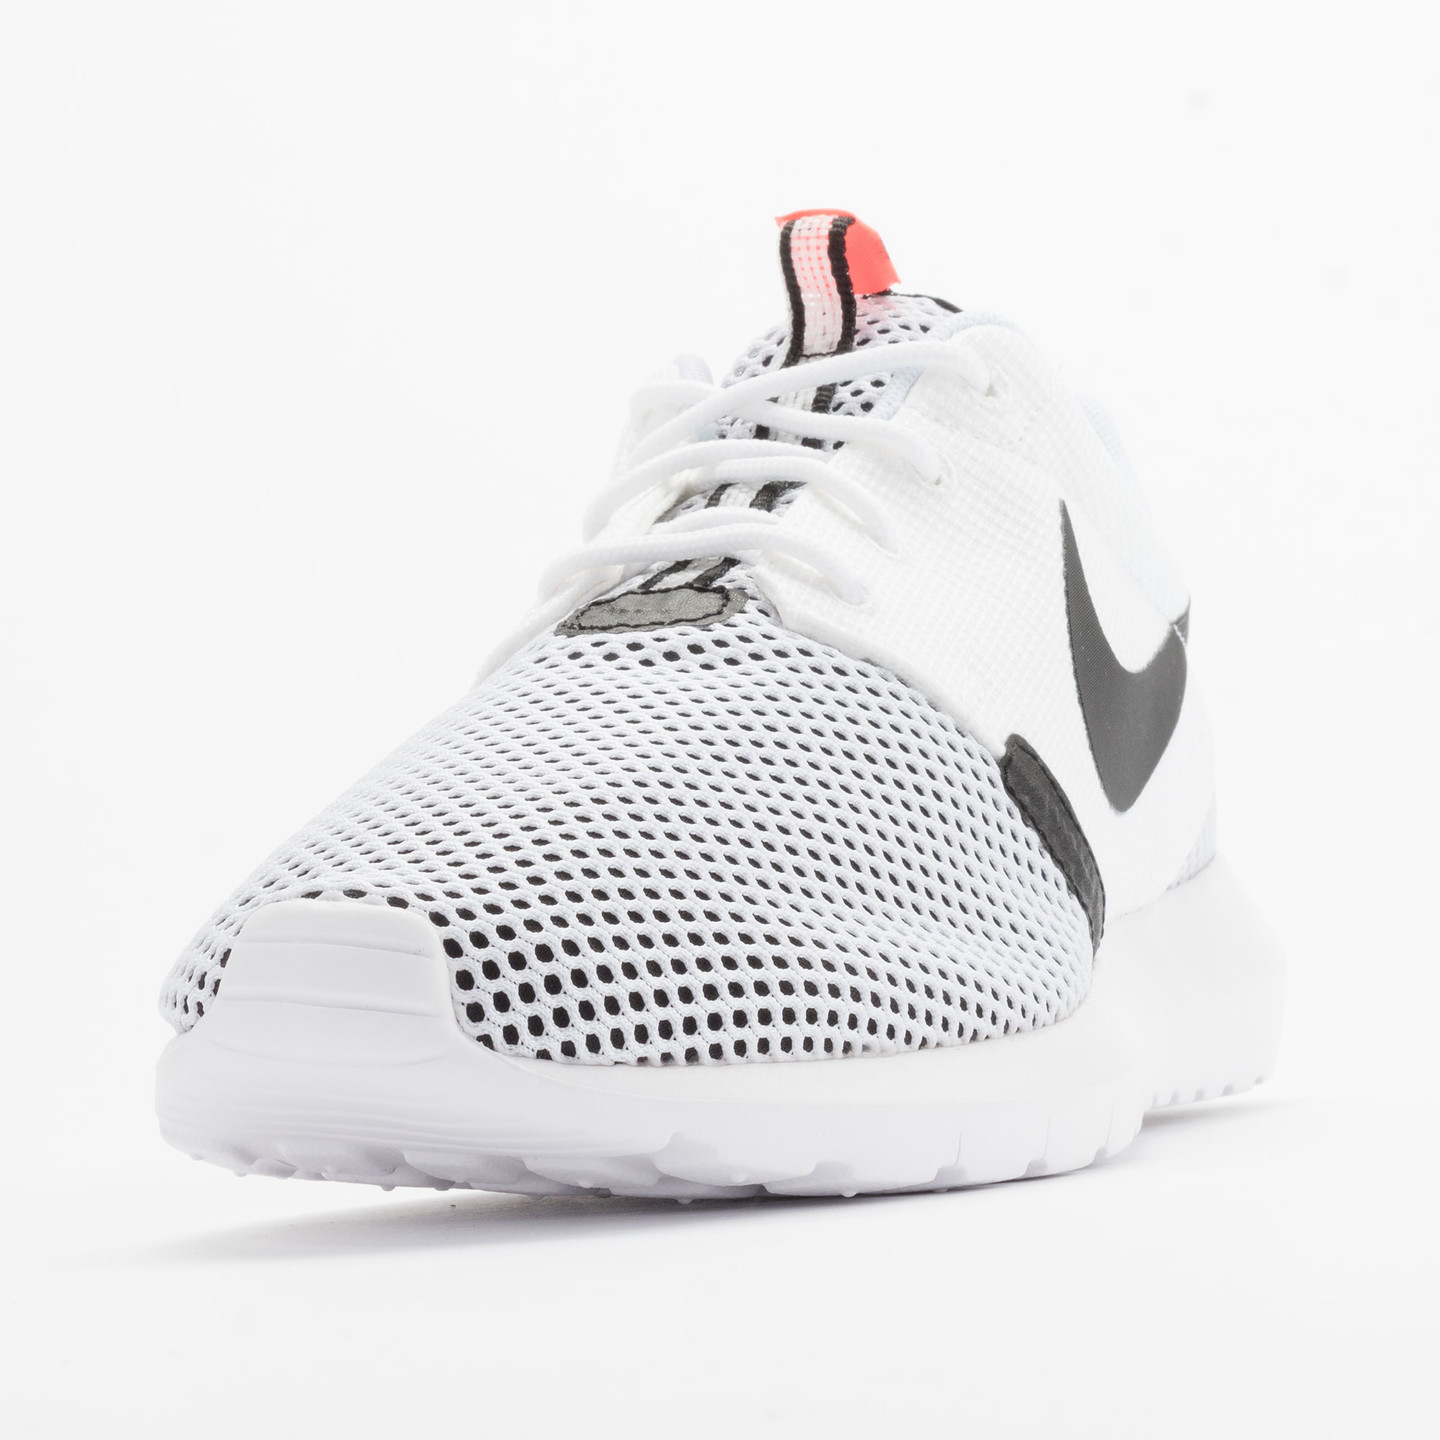 Nike Rosherun NM BR White/White-Black-Hot Lava 644425-100-42.5